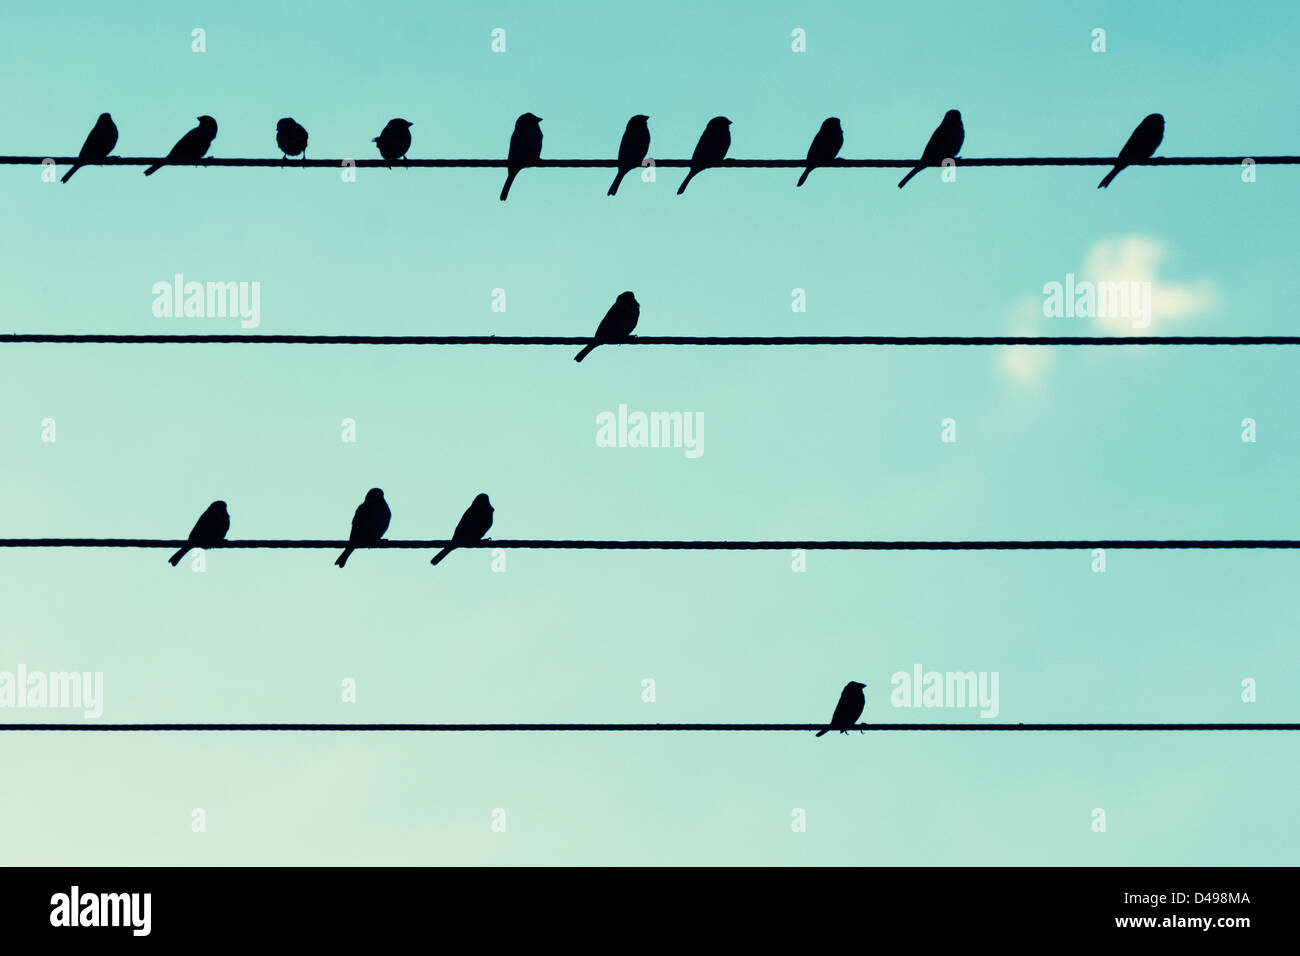 Birds on power cables, like musical notes. - Stock Image